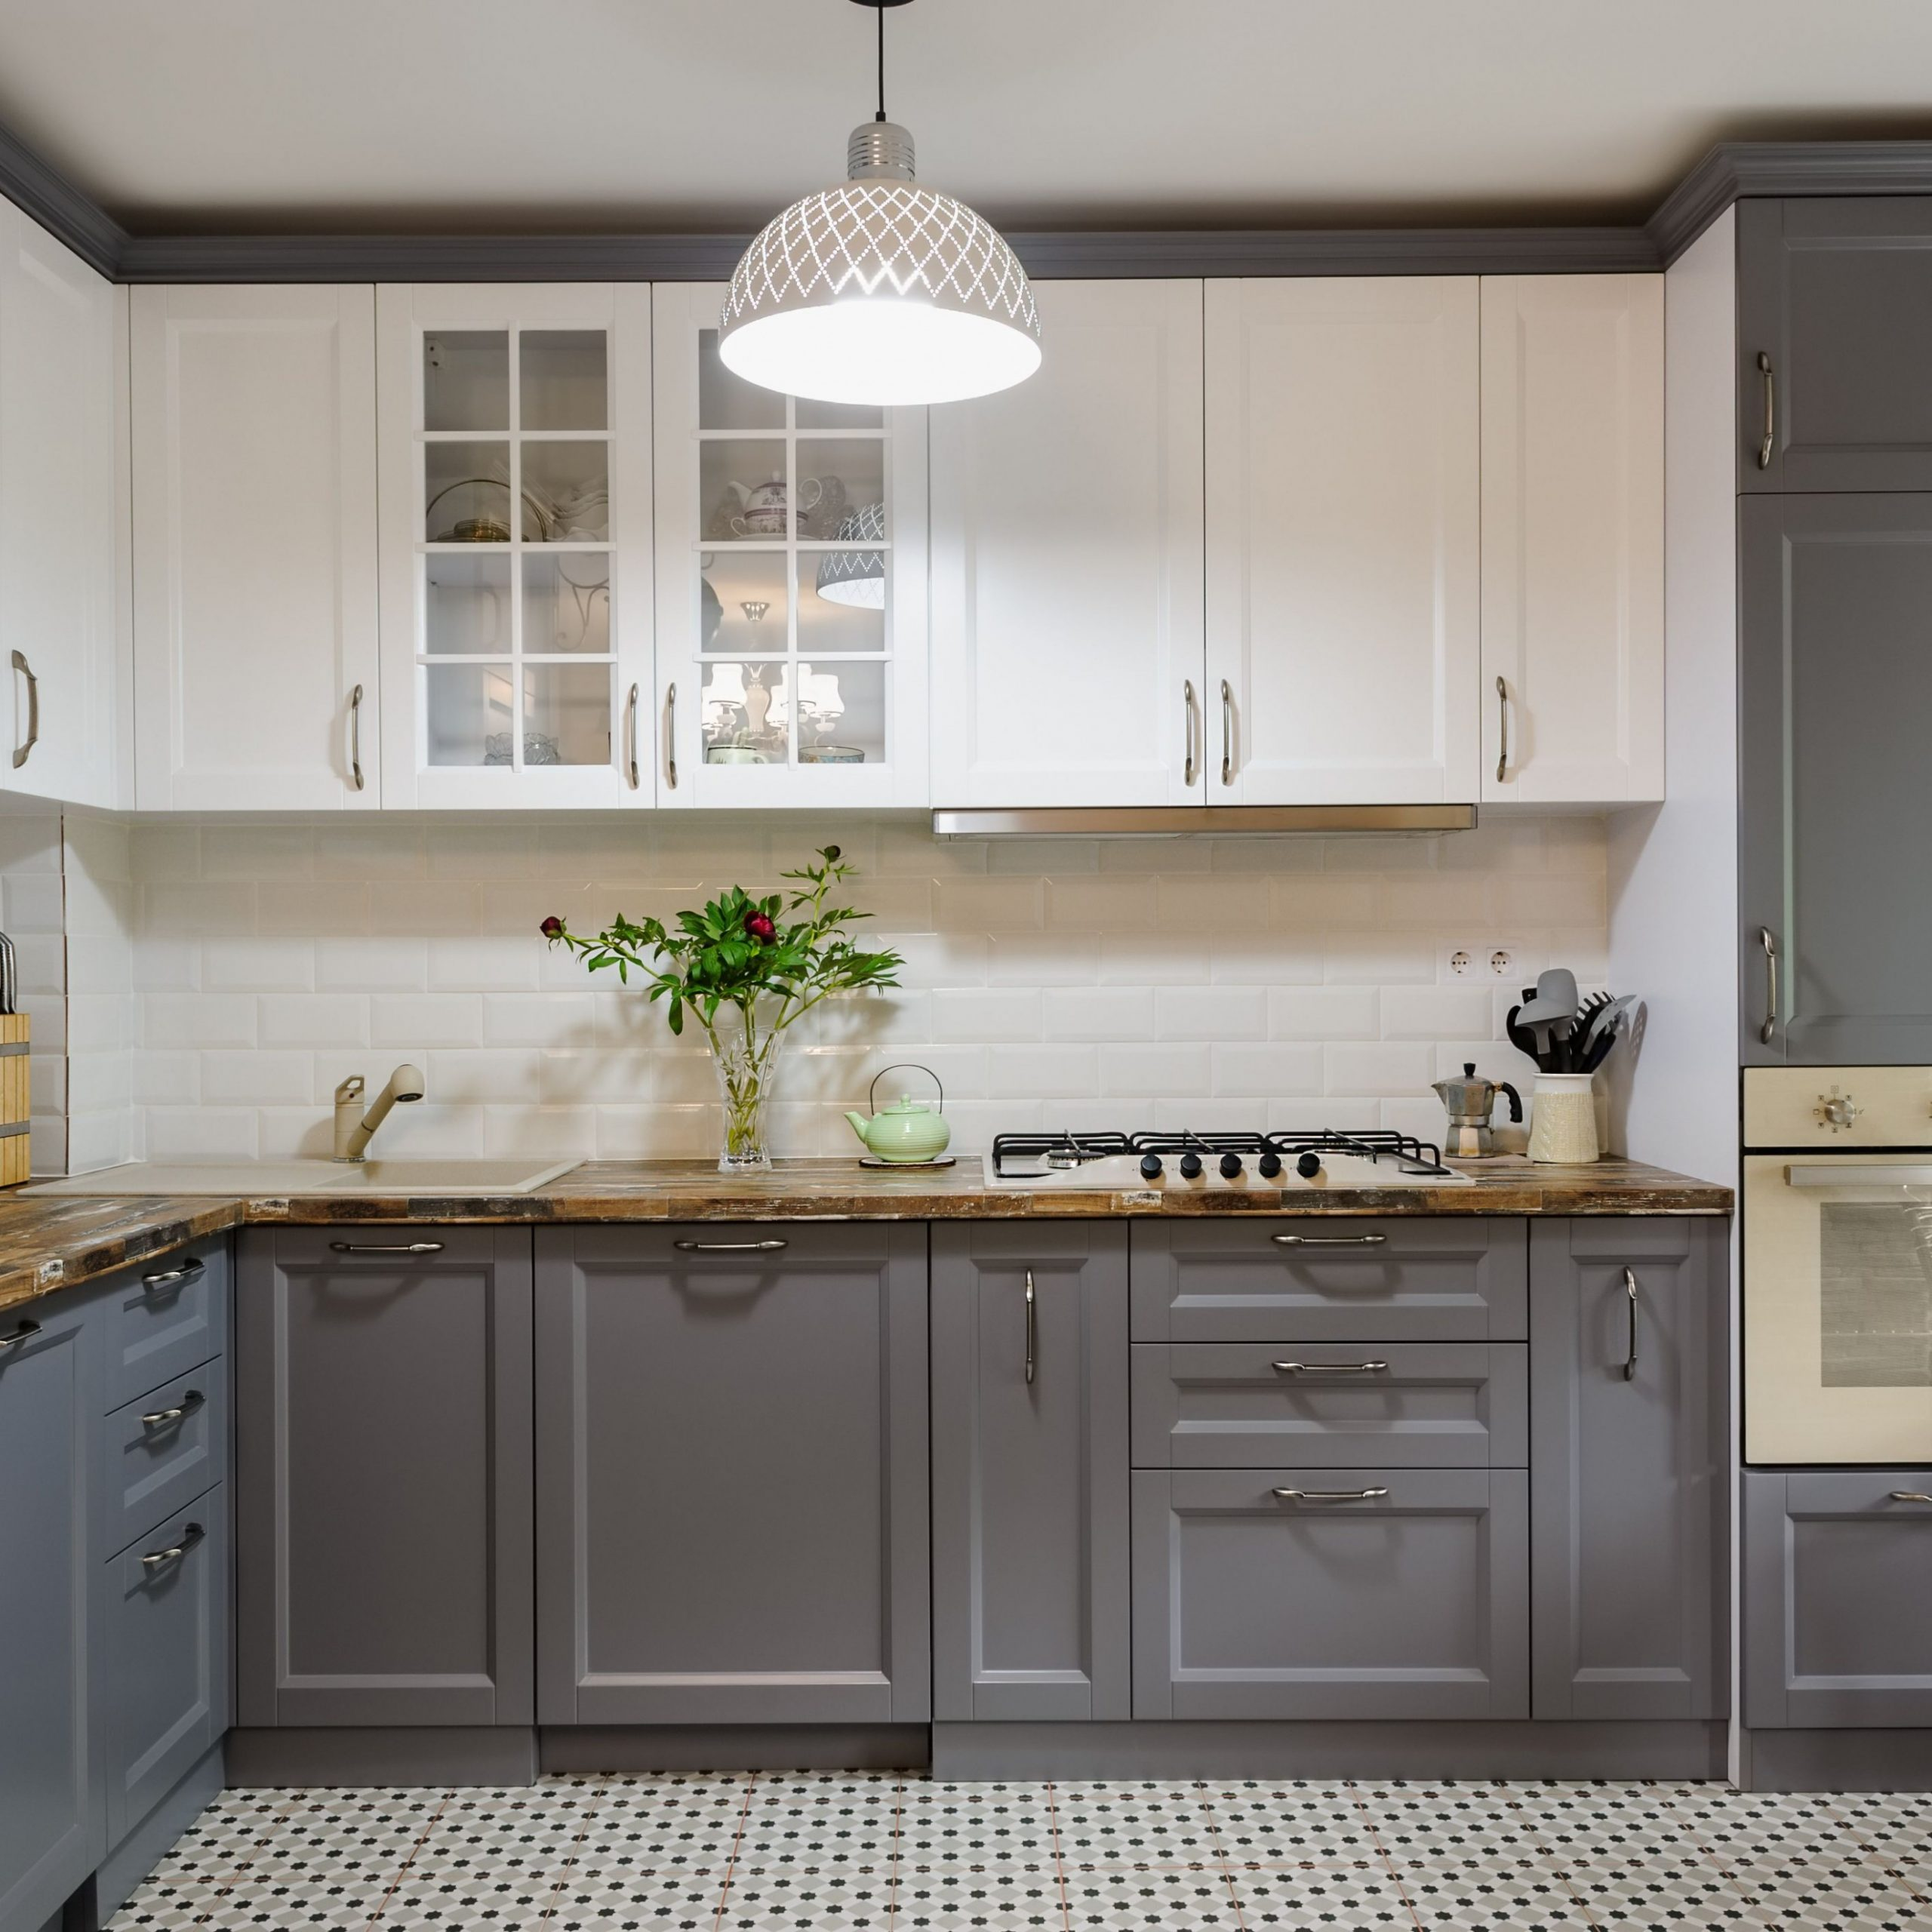 What Is a Base Cabinet? - Shorter Kitchen Base Cabinets